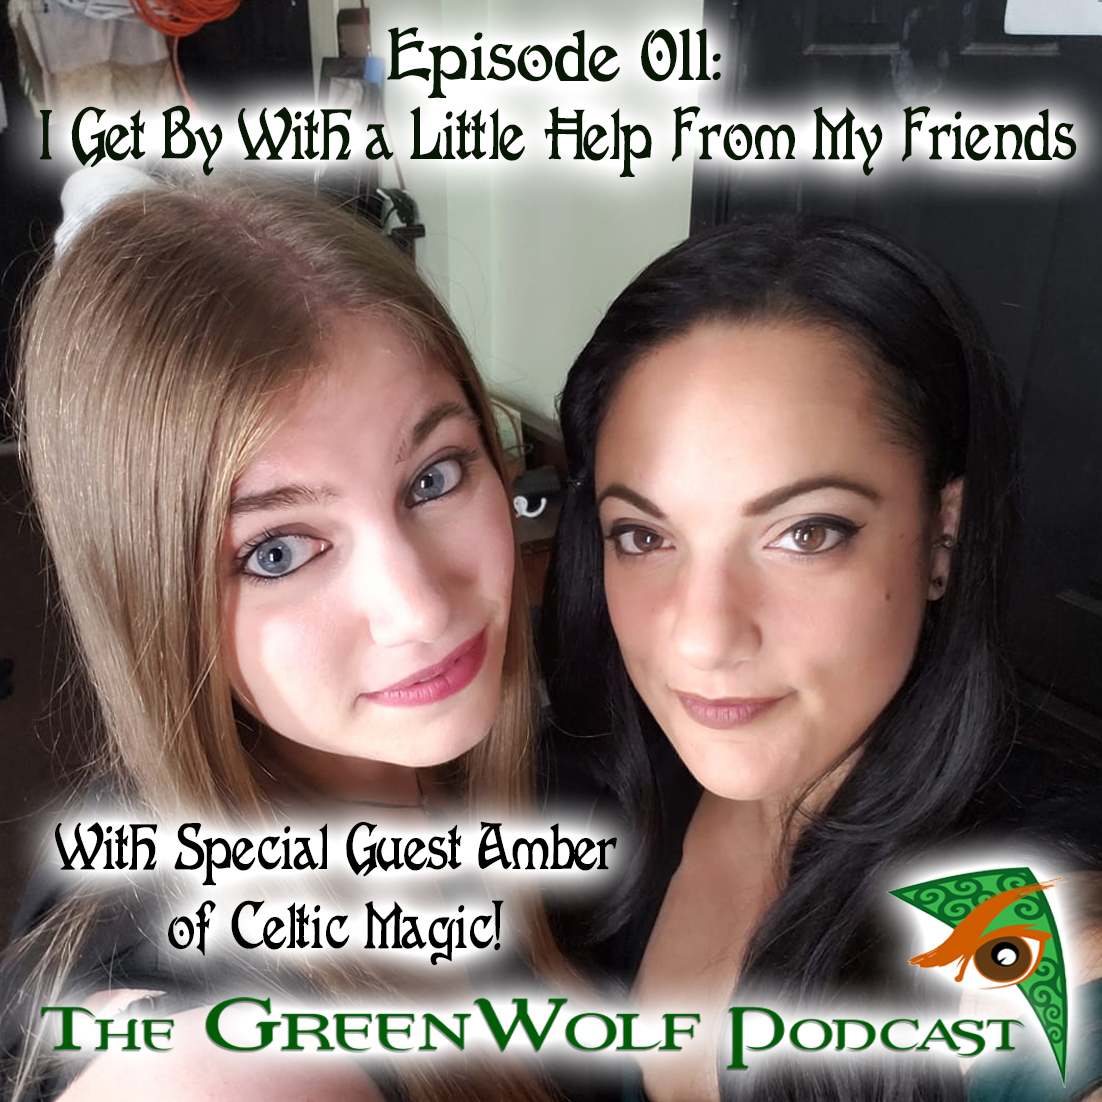 The GreenWolf Podcast - Ep. 011 I Get By With a Little Help From My Friends